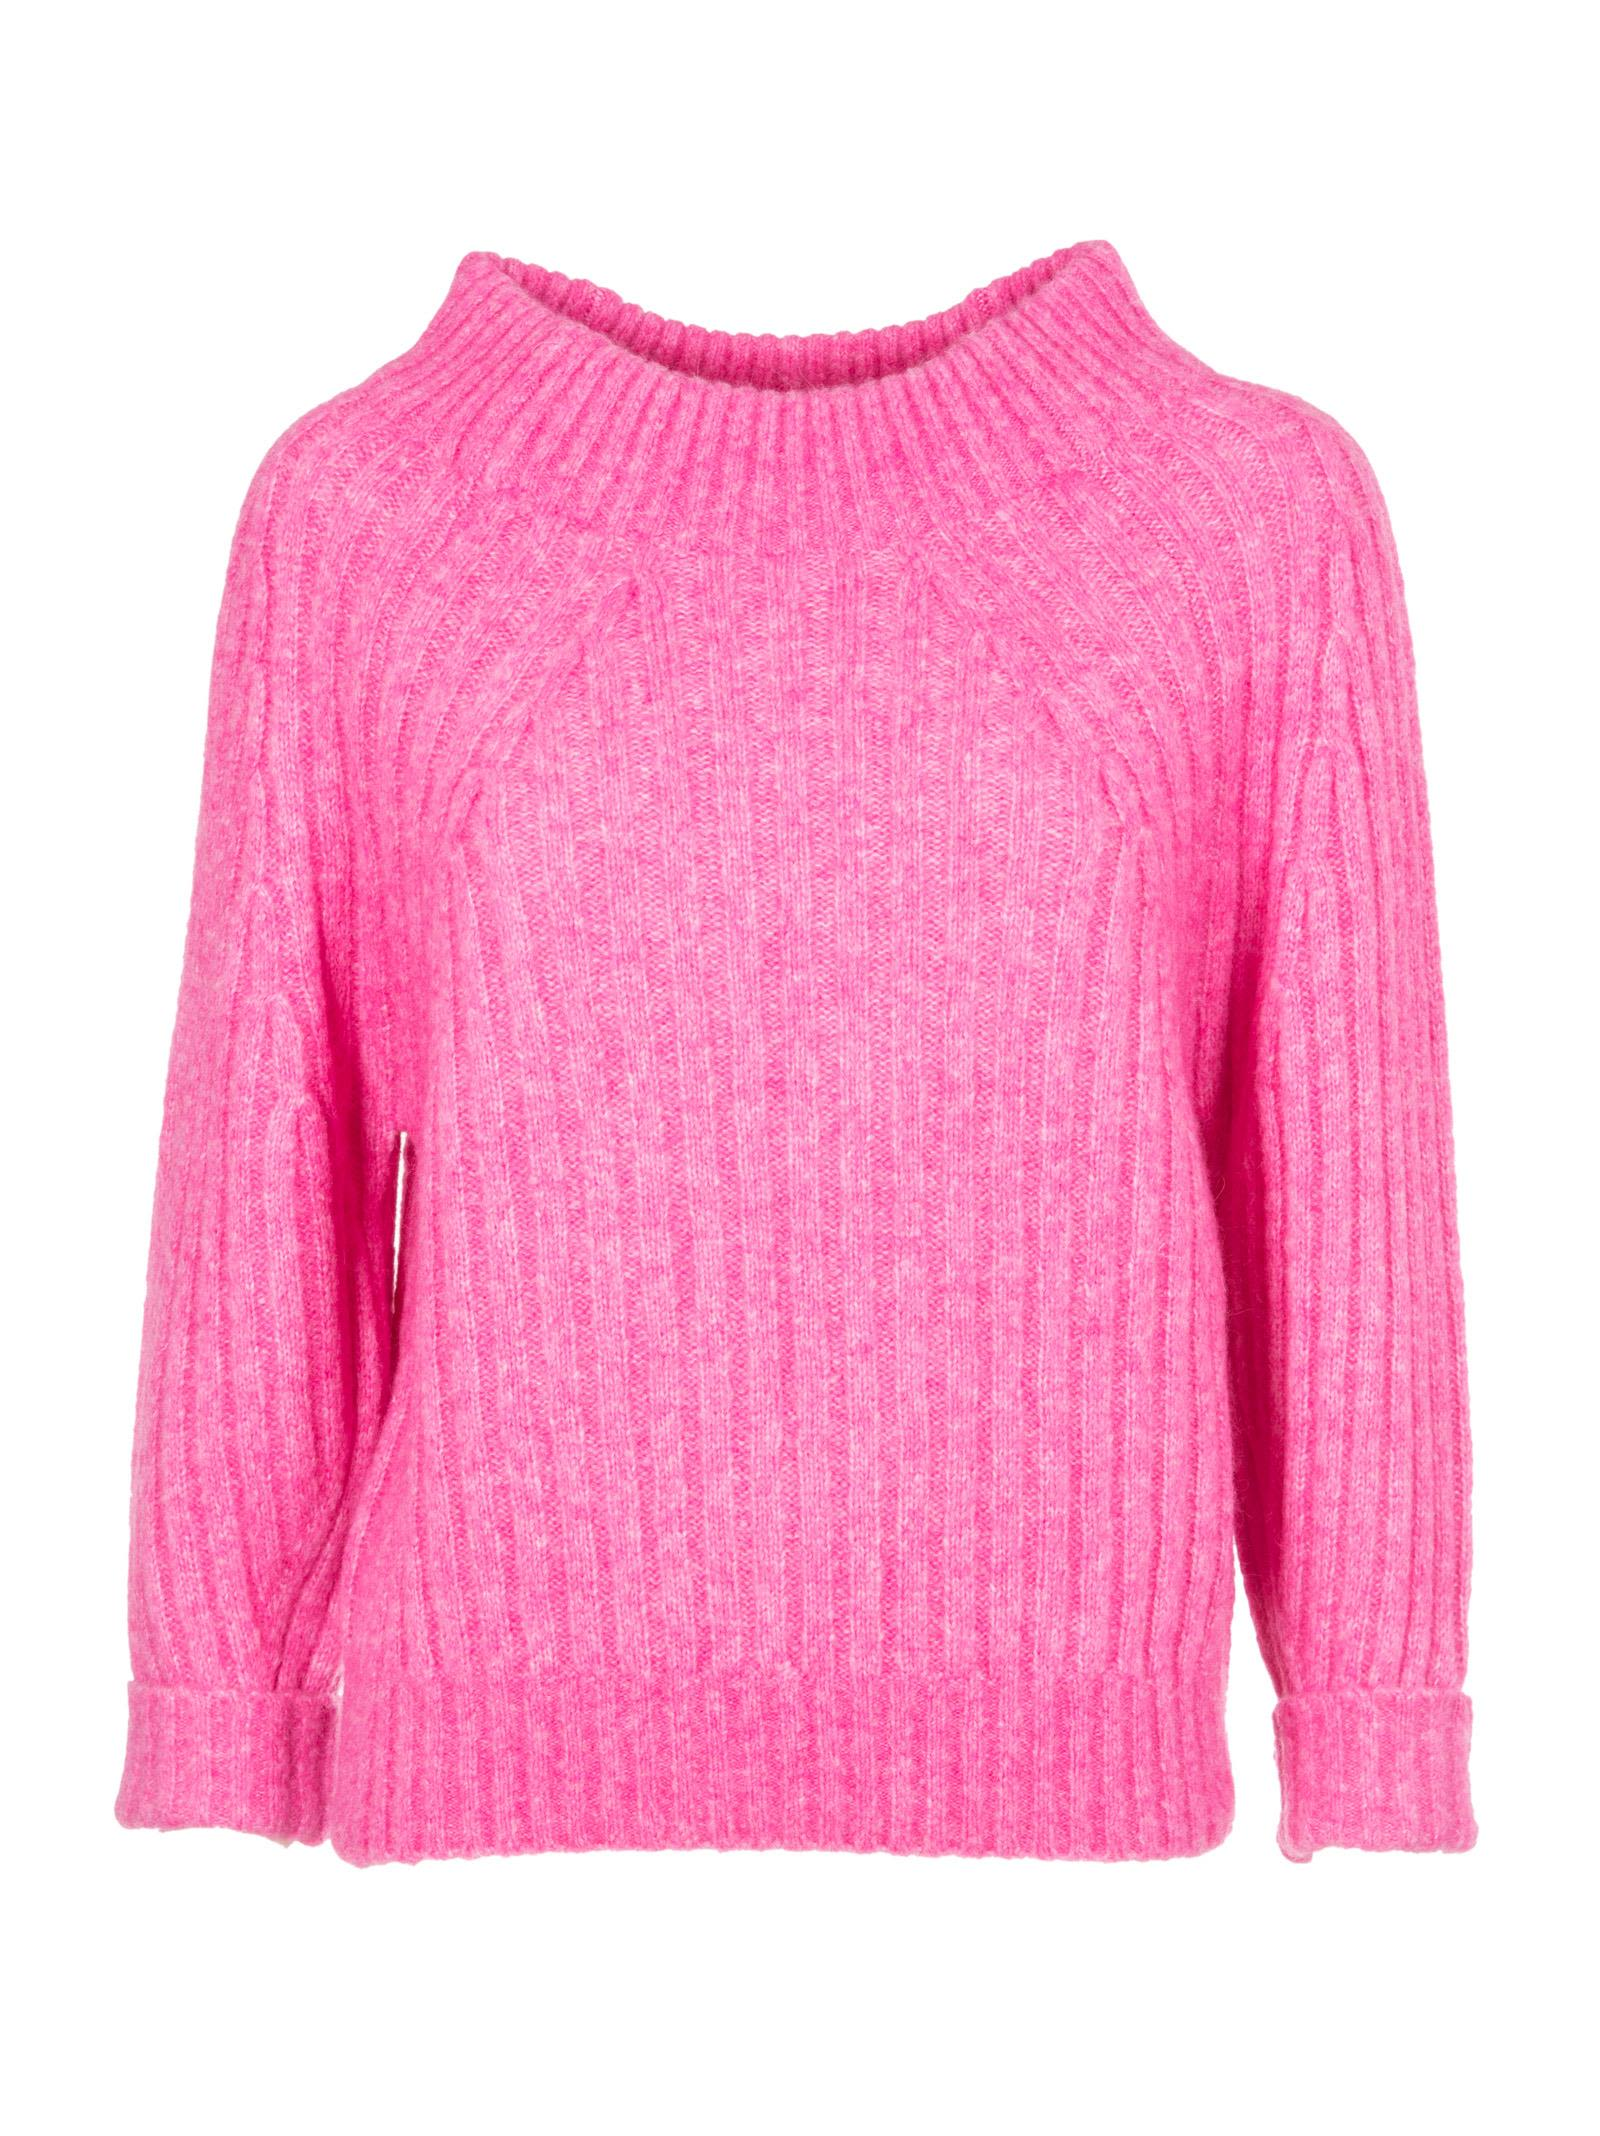 3.1 Phillip Lim - 3.1 Phillip Lim Ribbed Sweater - Candy pink ...